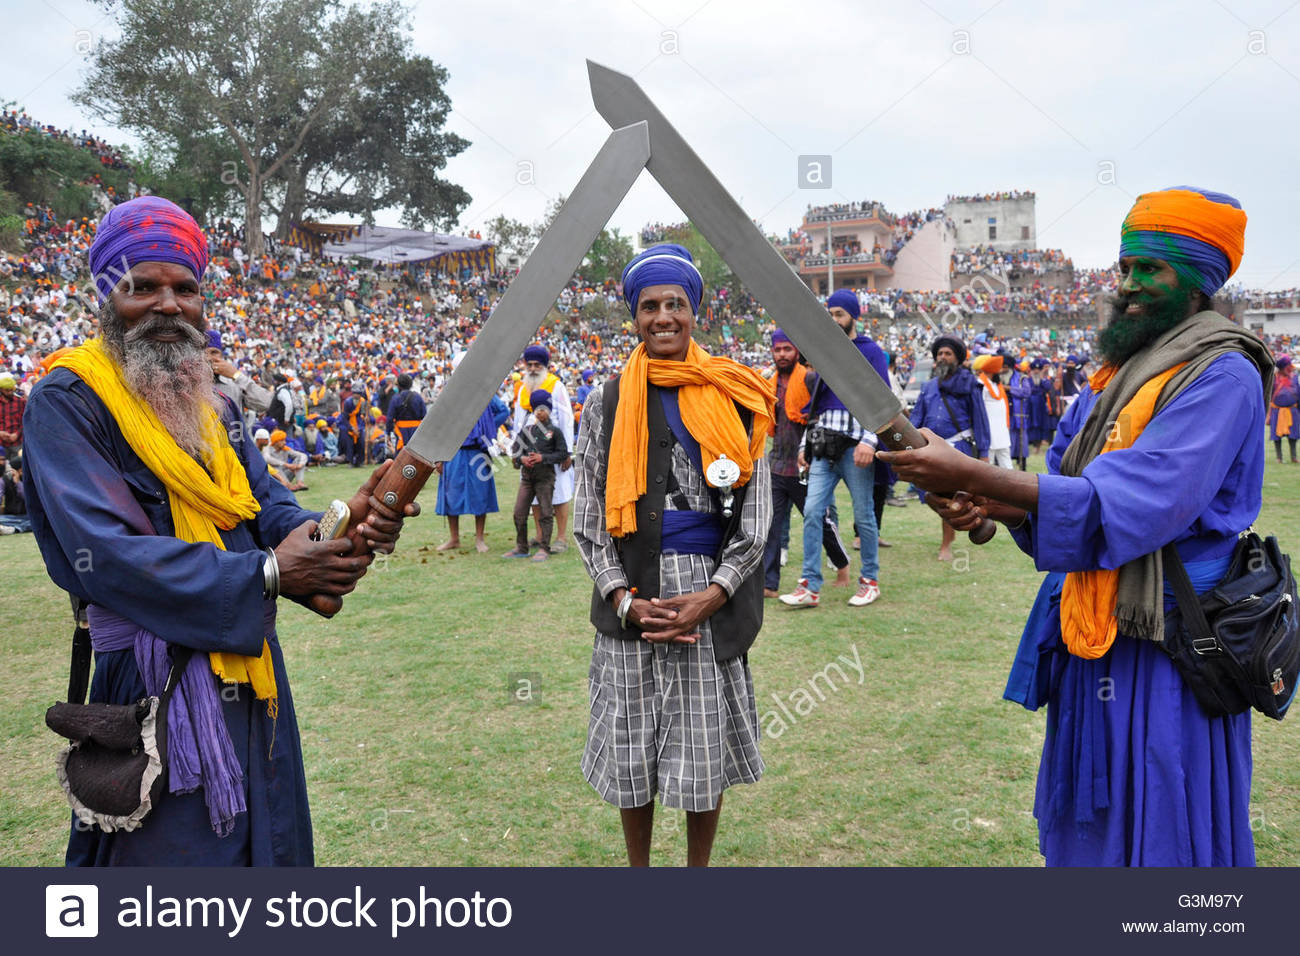 Hola Mohalla Stock Photos and Images